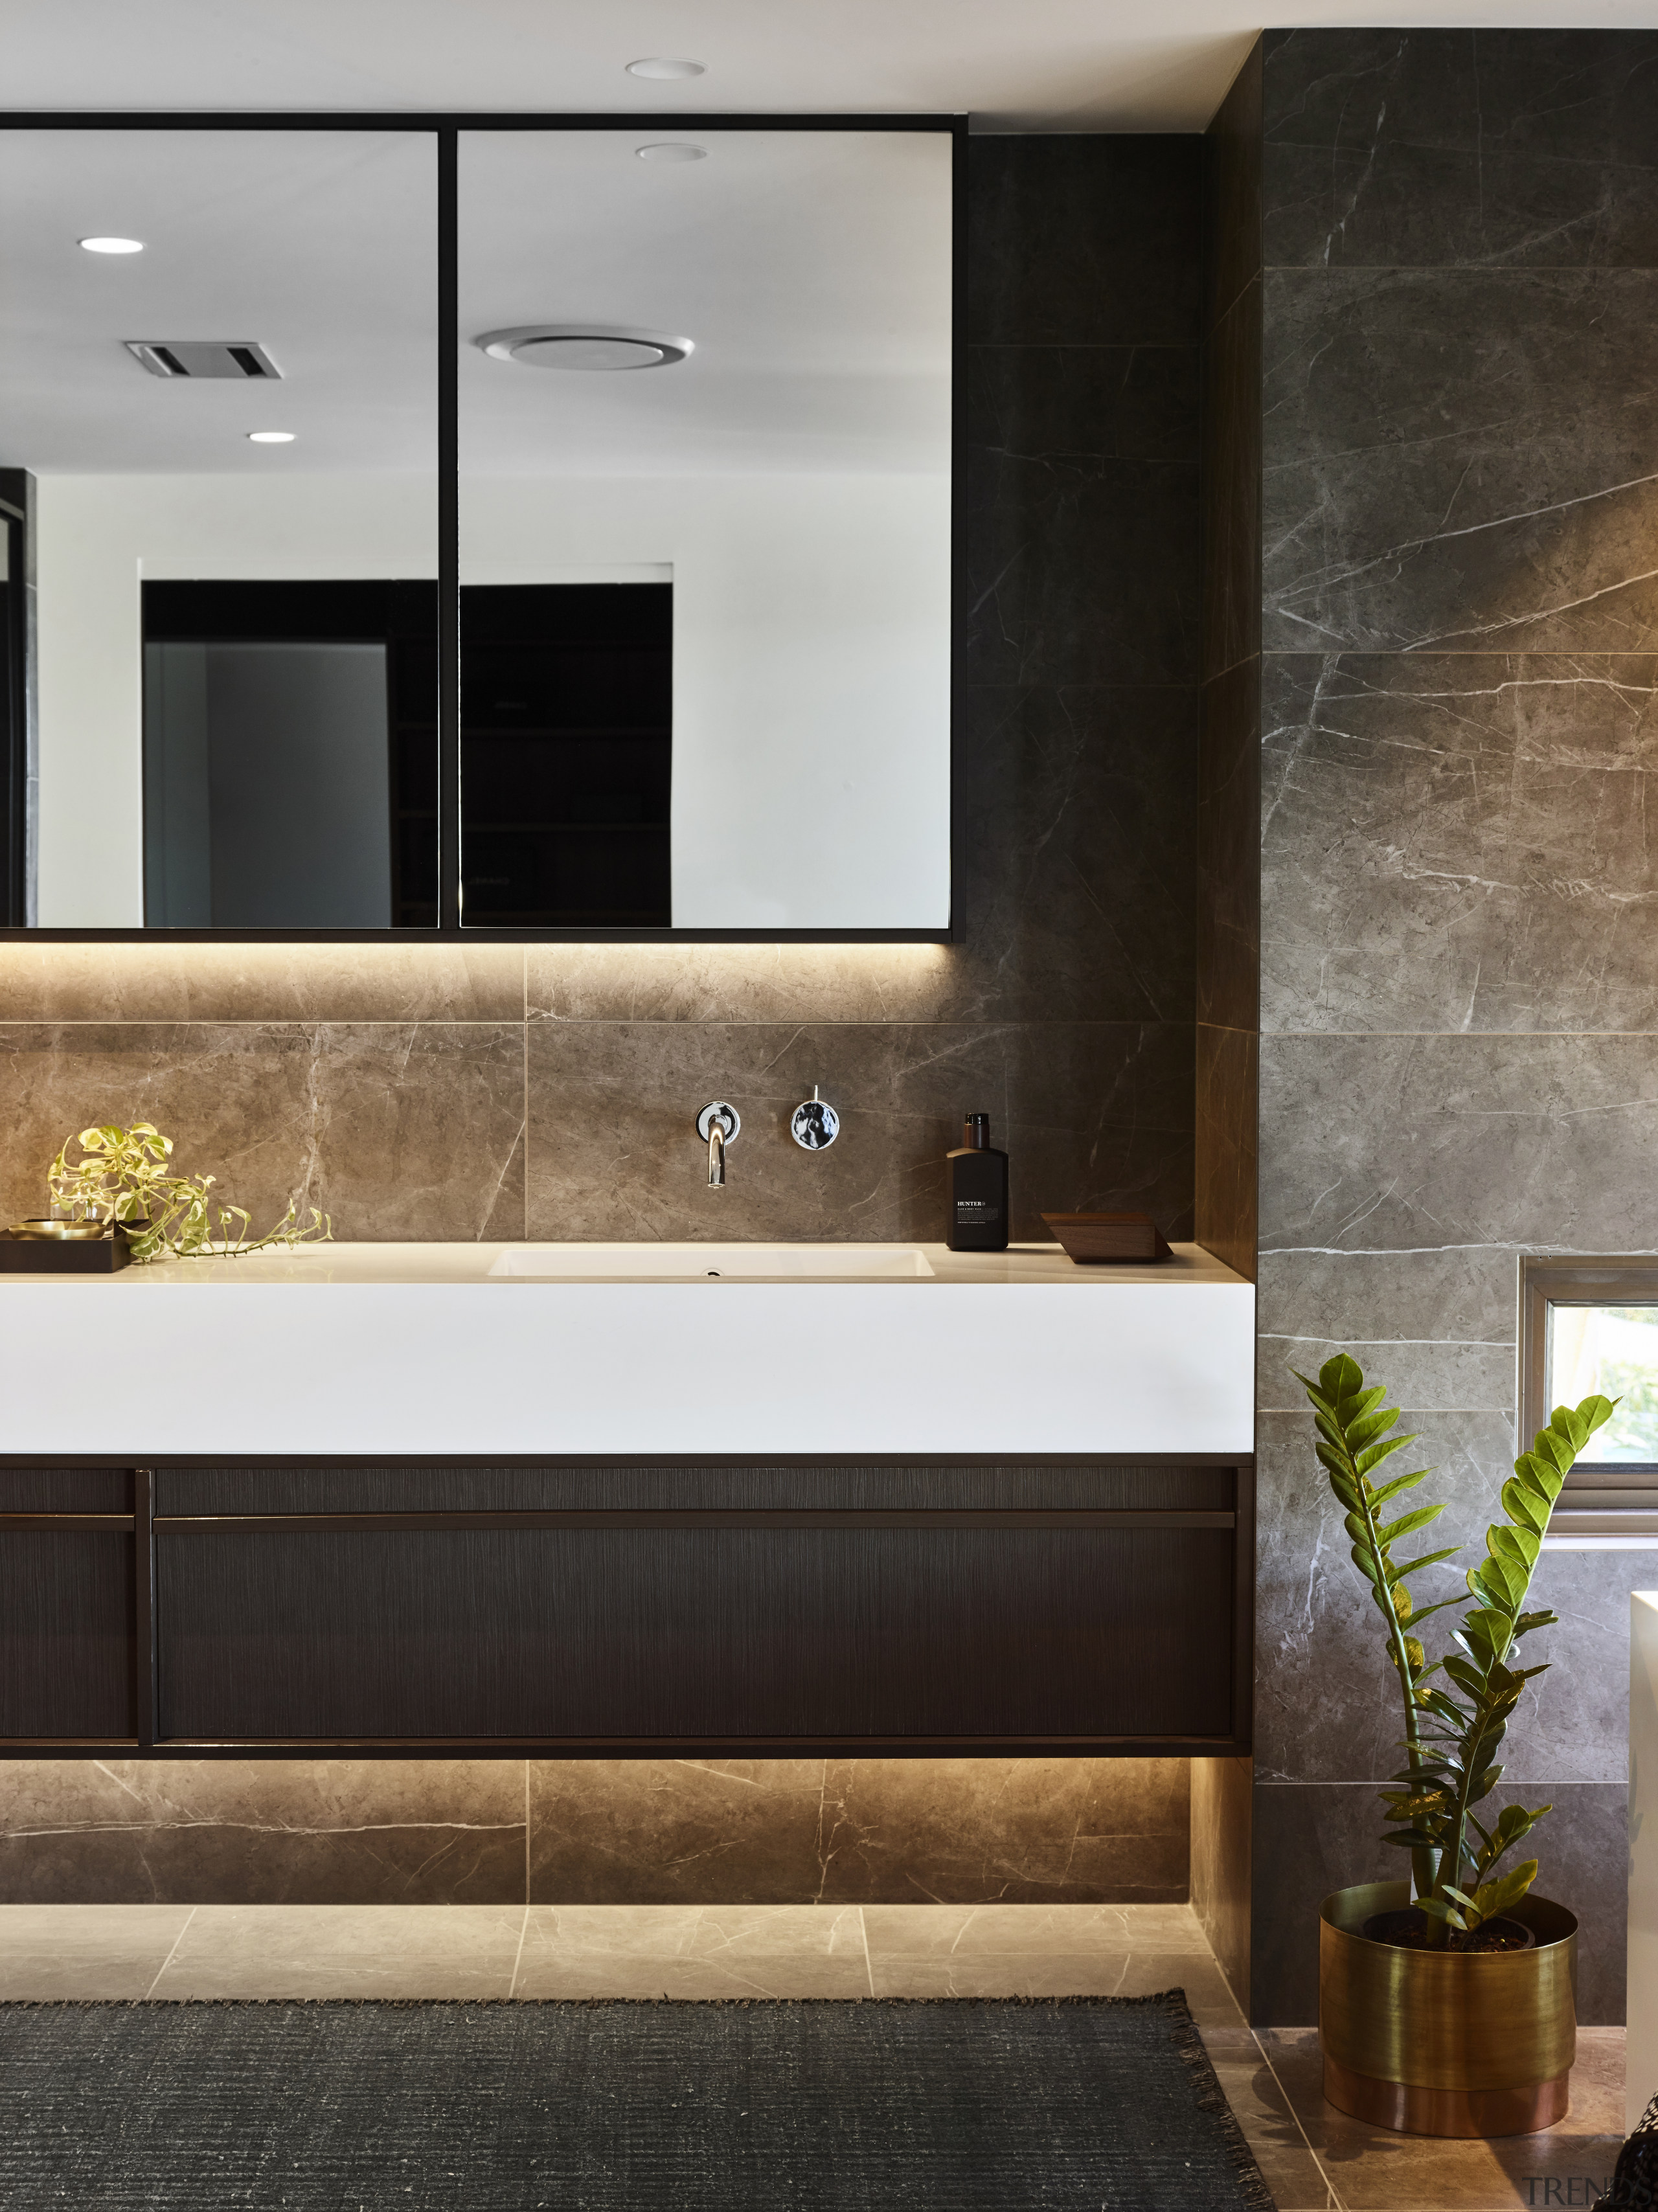 ​​​​​​​A delicate composition of tones and materials gives architecture, bathroom, bathroom accessory, building, cabinetry, ceiling, countertop, floor, flooring, furniture, home, house, interior design, marble, material property, plumbing fixture, property, room, sink, tap, tile, wall, black, gray